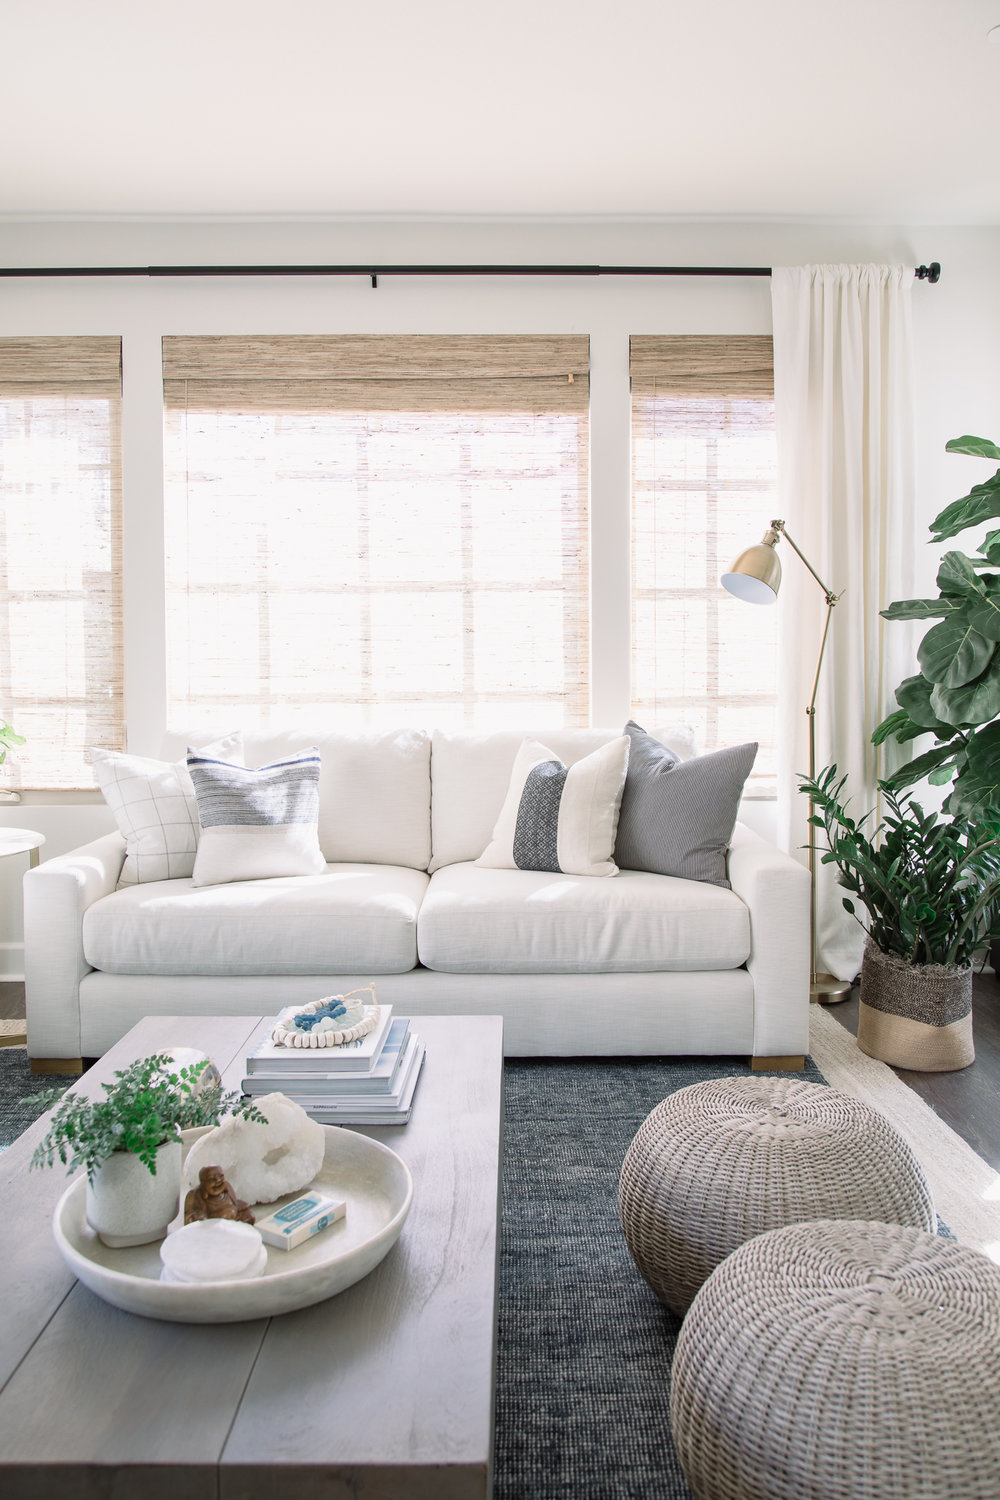 The natural light makes the white sofa glow in the afternoon sun.